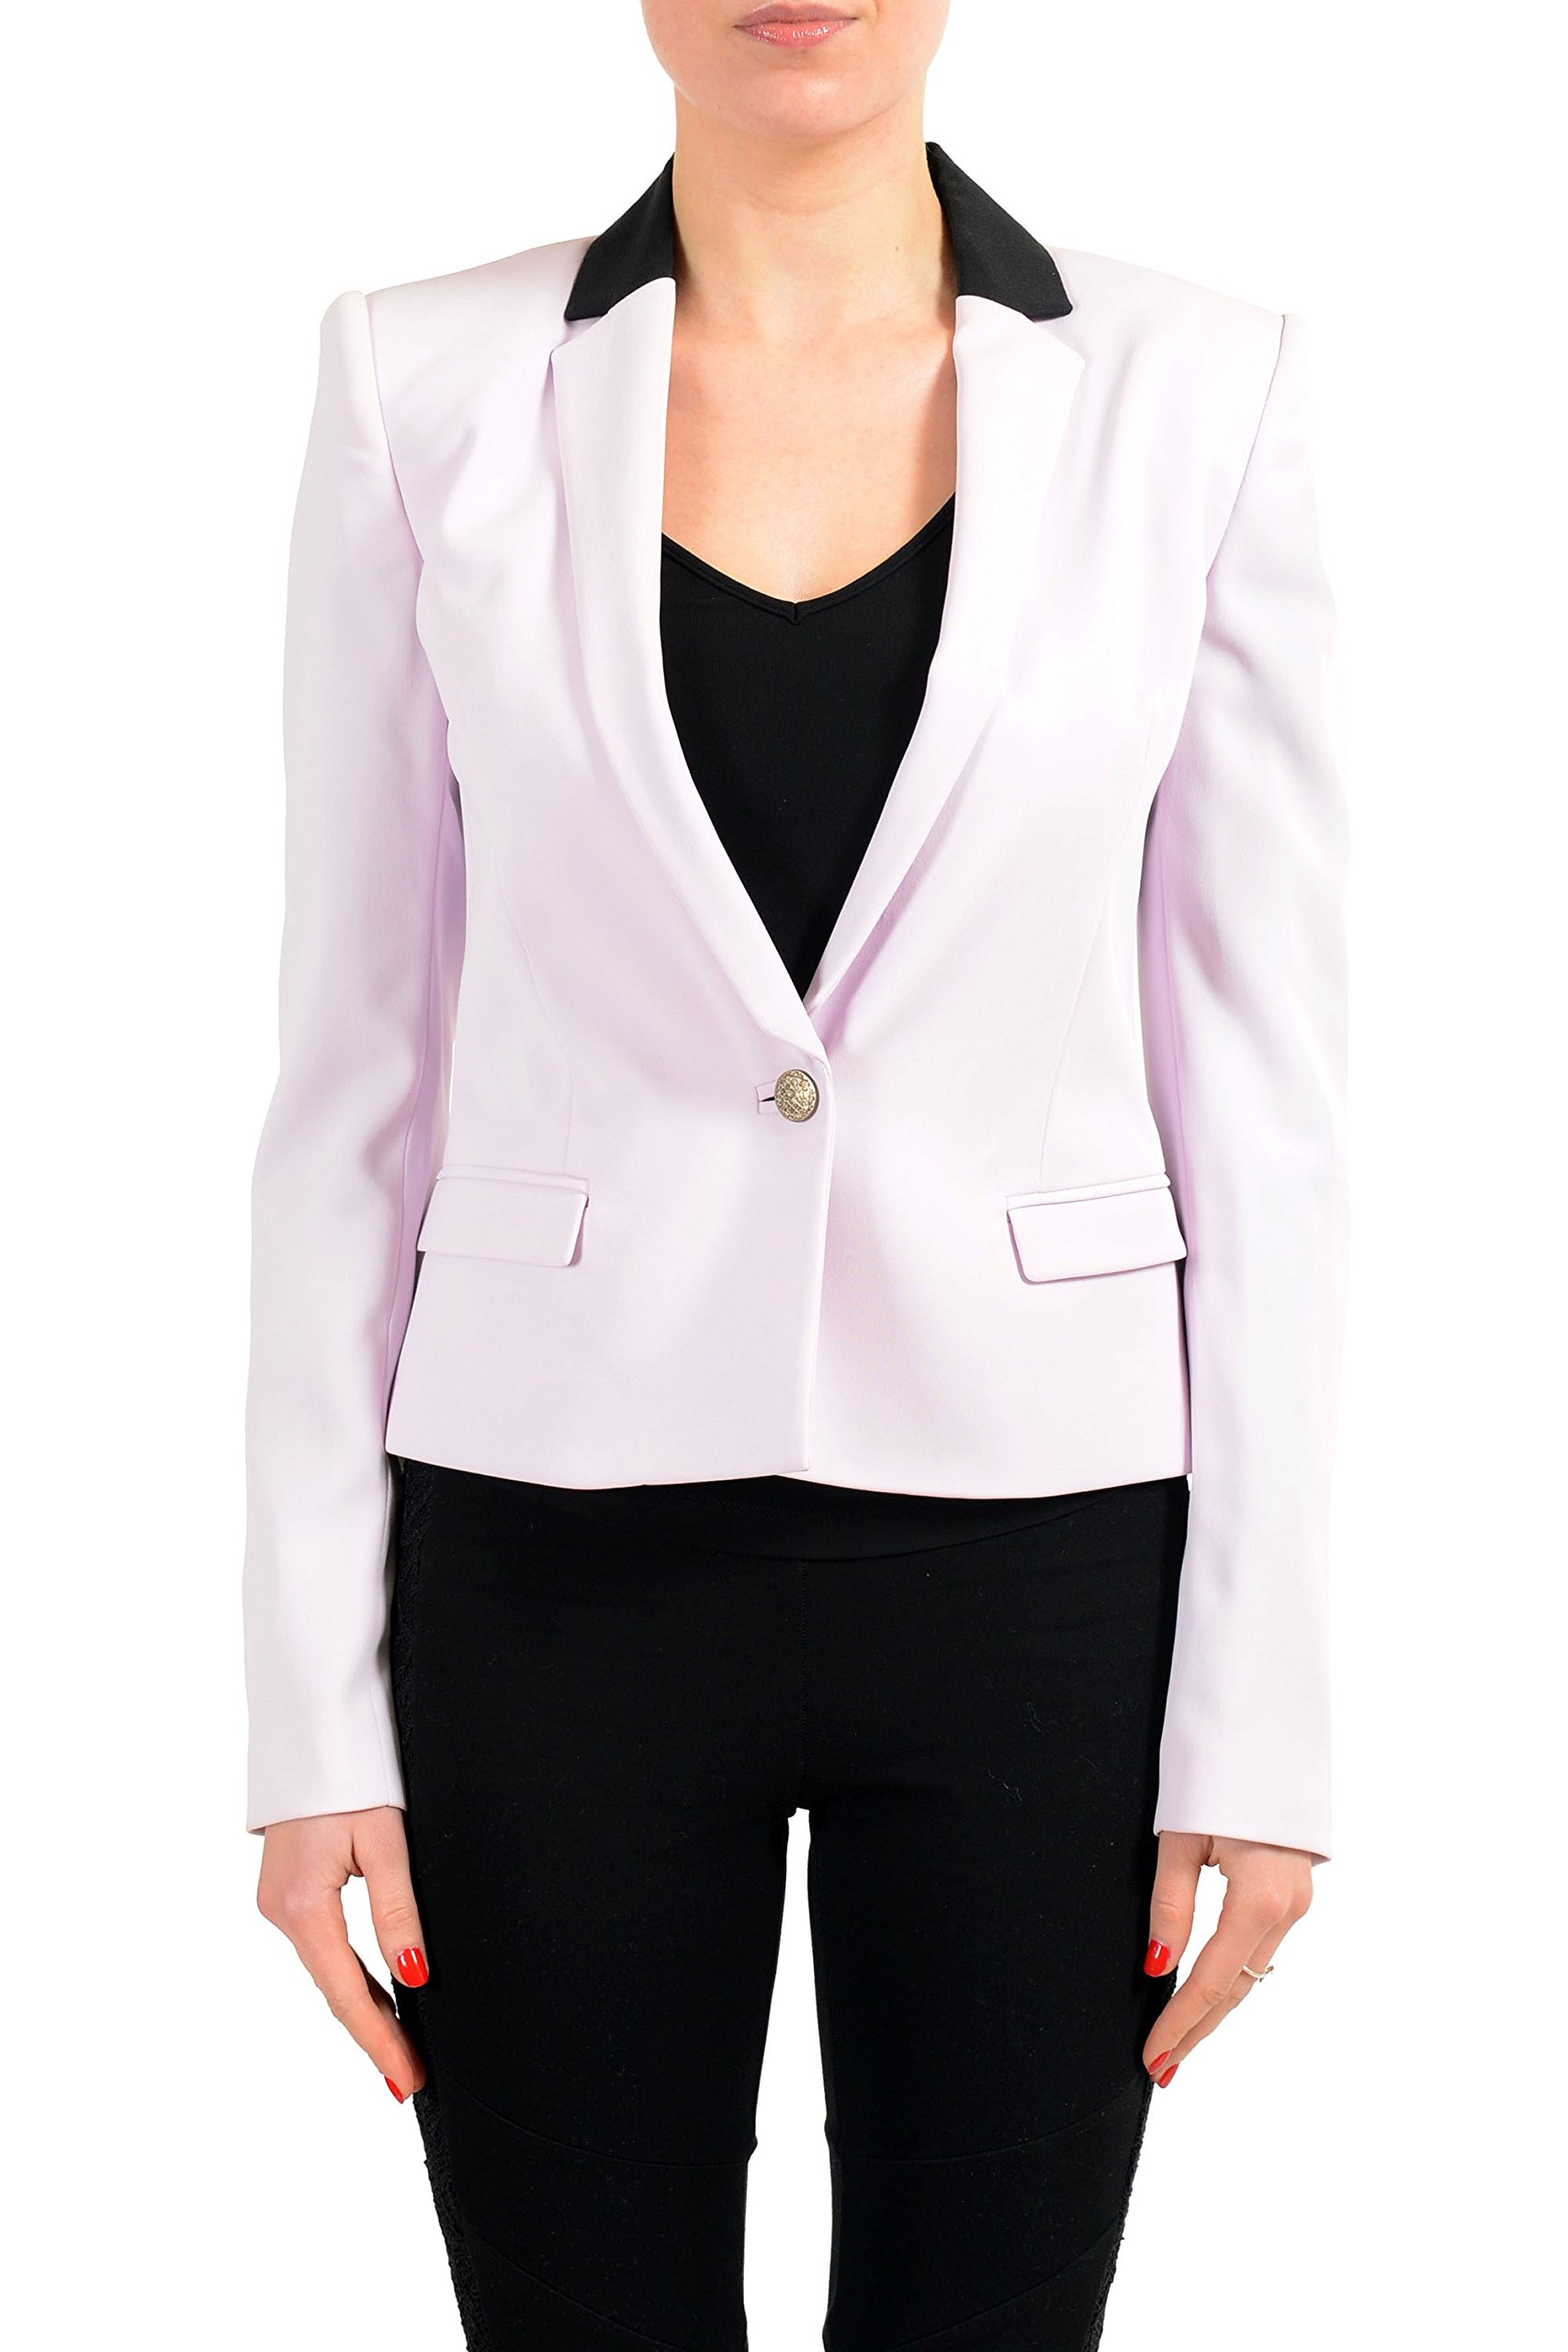 Just Cavalli Purple One Button Women's Blazer US 2XL IT 48